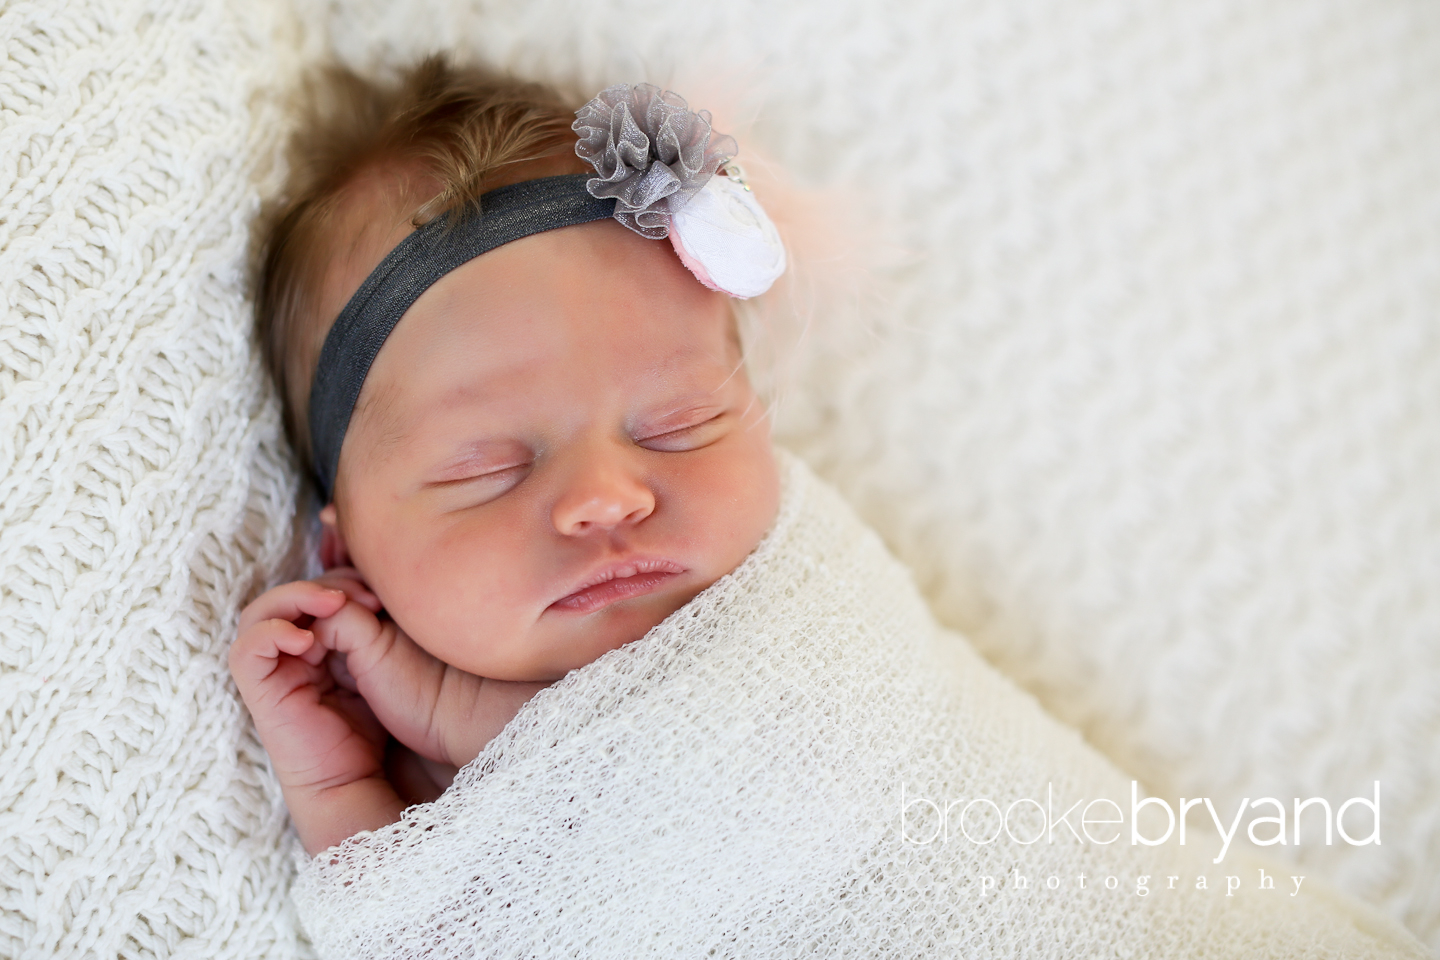 Brooke-Bryand-Photography-San-Francisco-Newborn-Photographer_IMG_5752-Edit.jpg